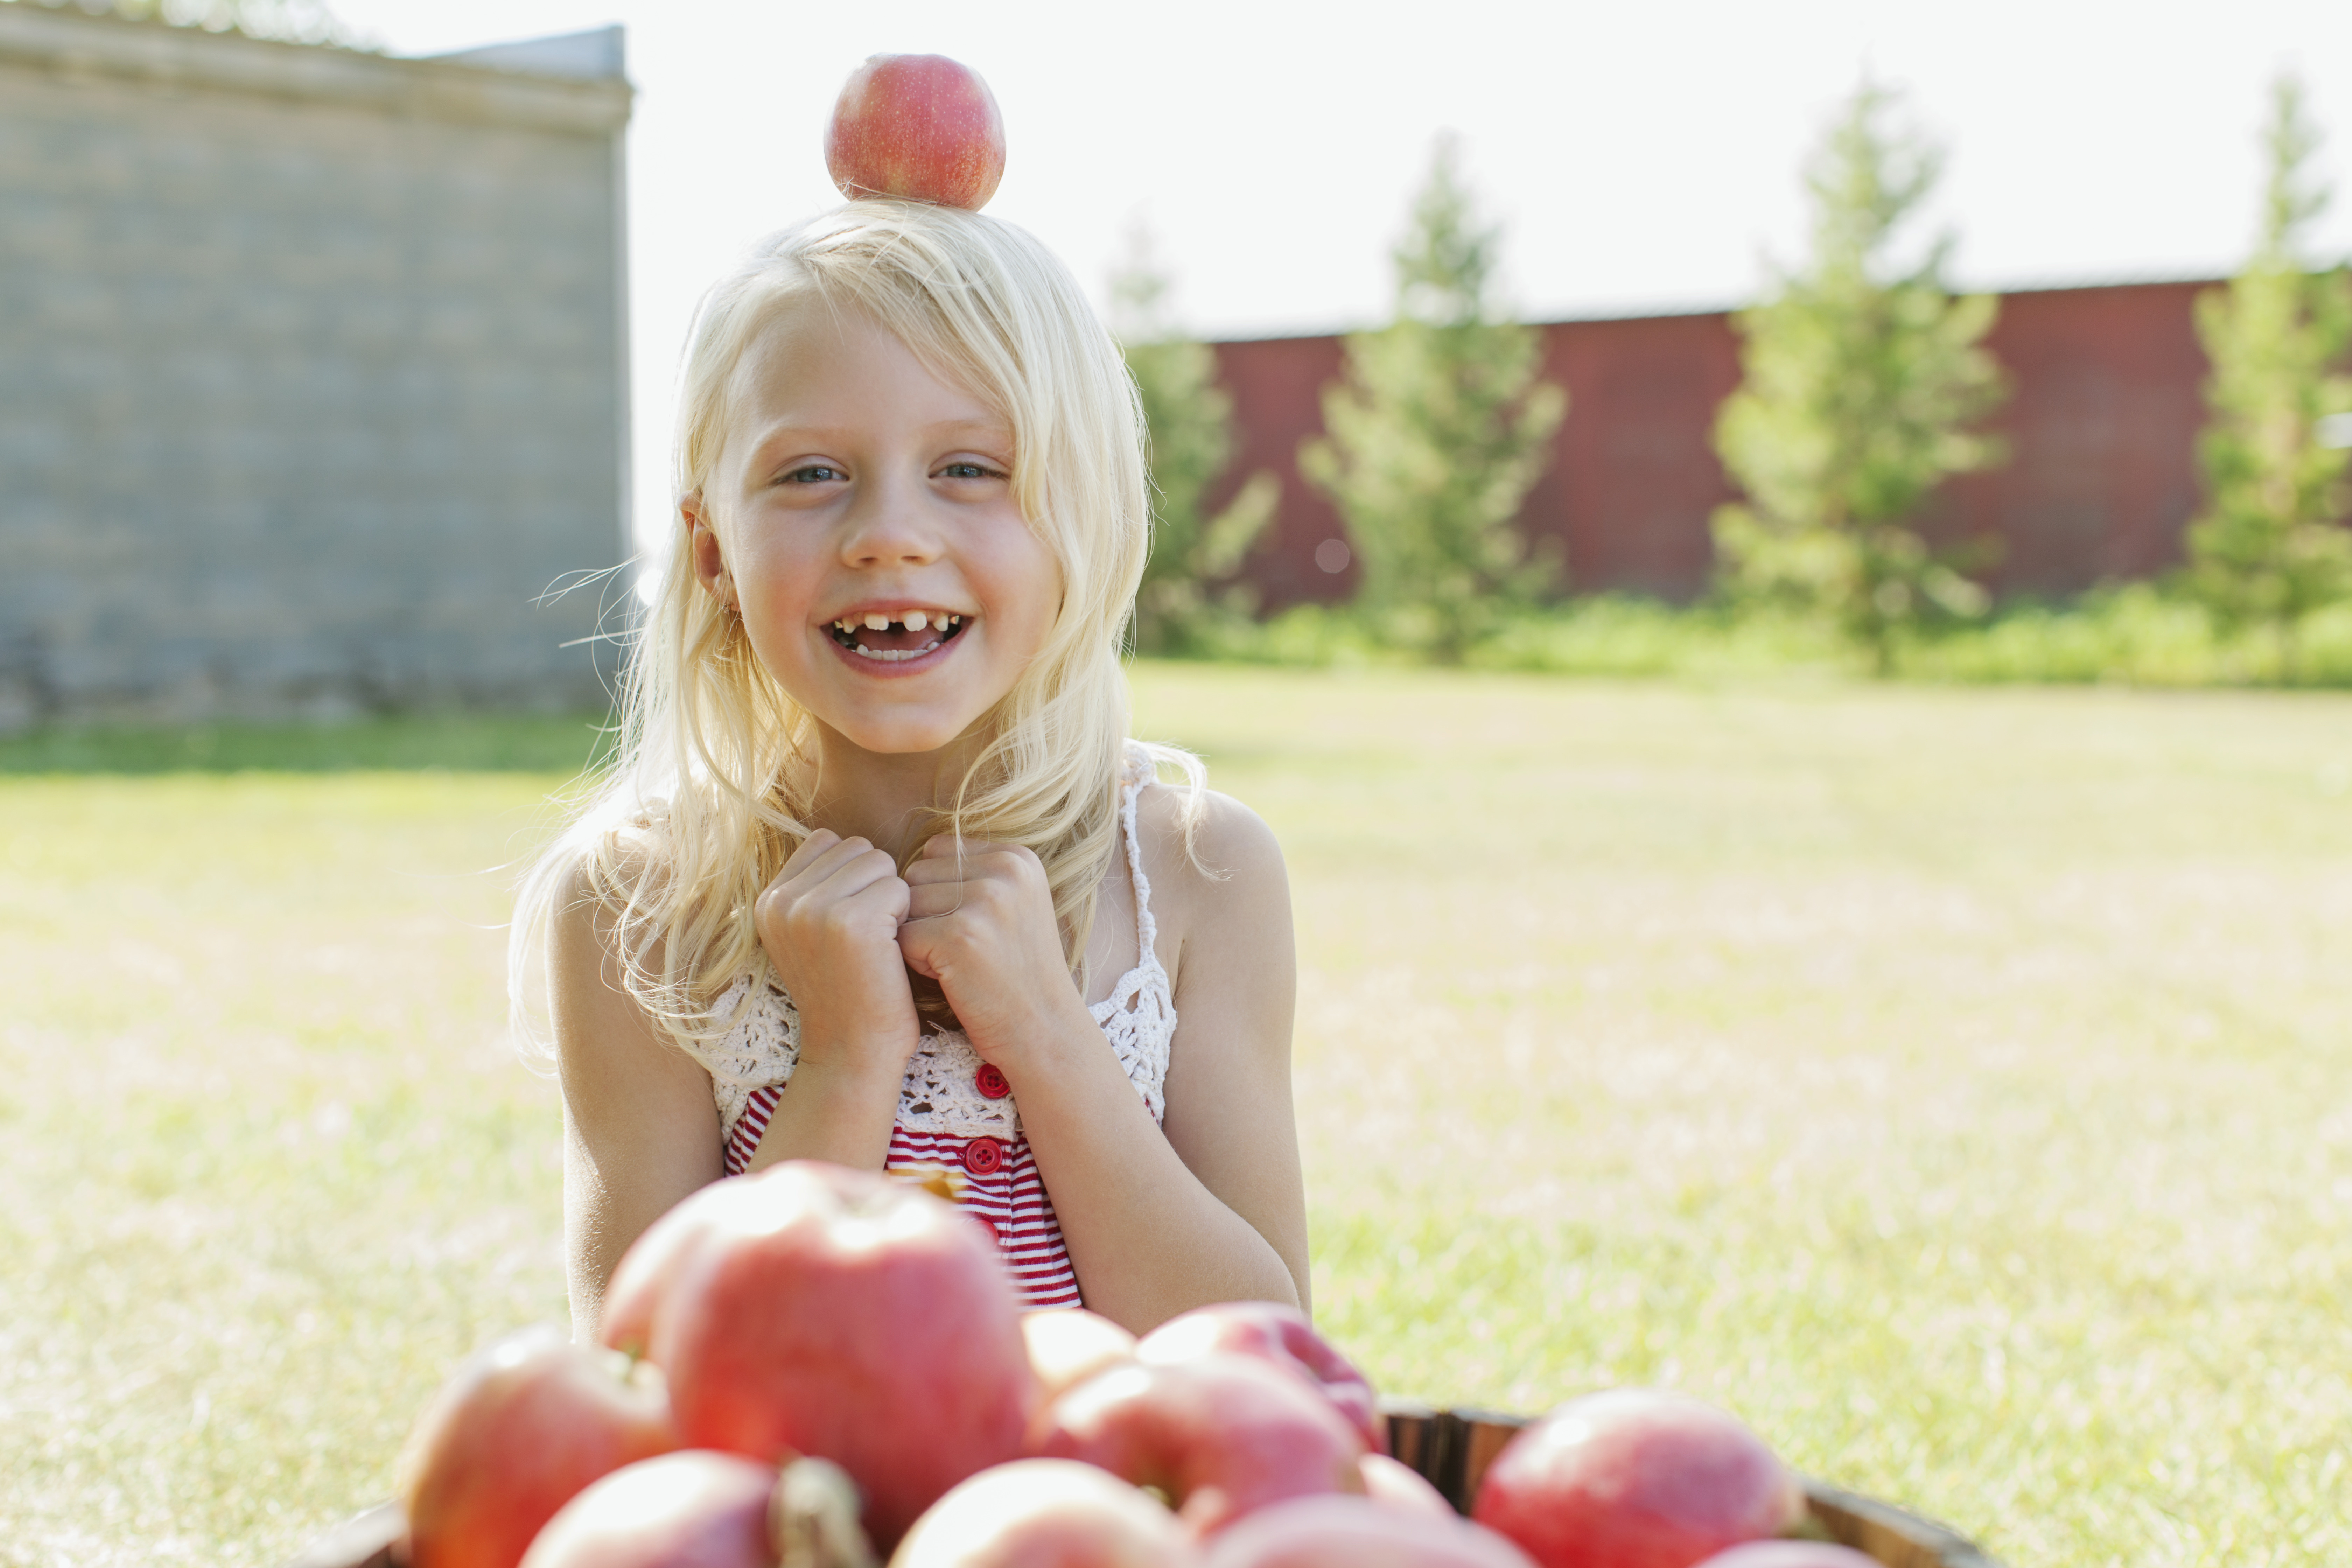 Little girl with an apple on her head